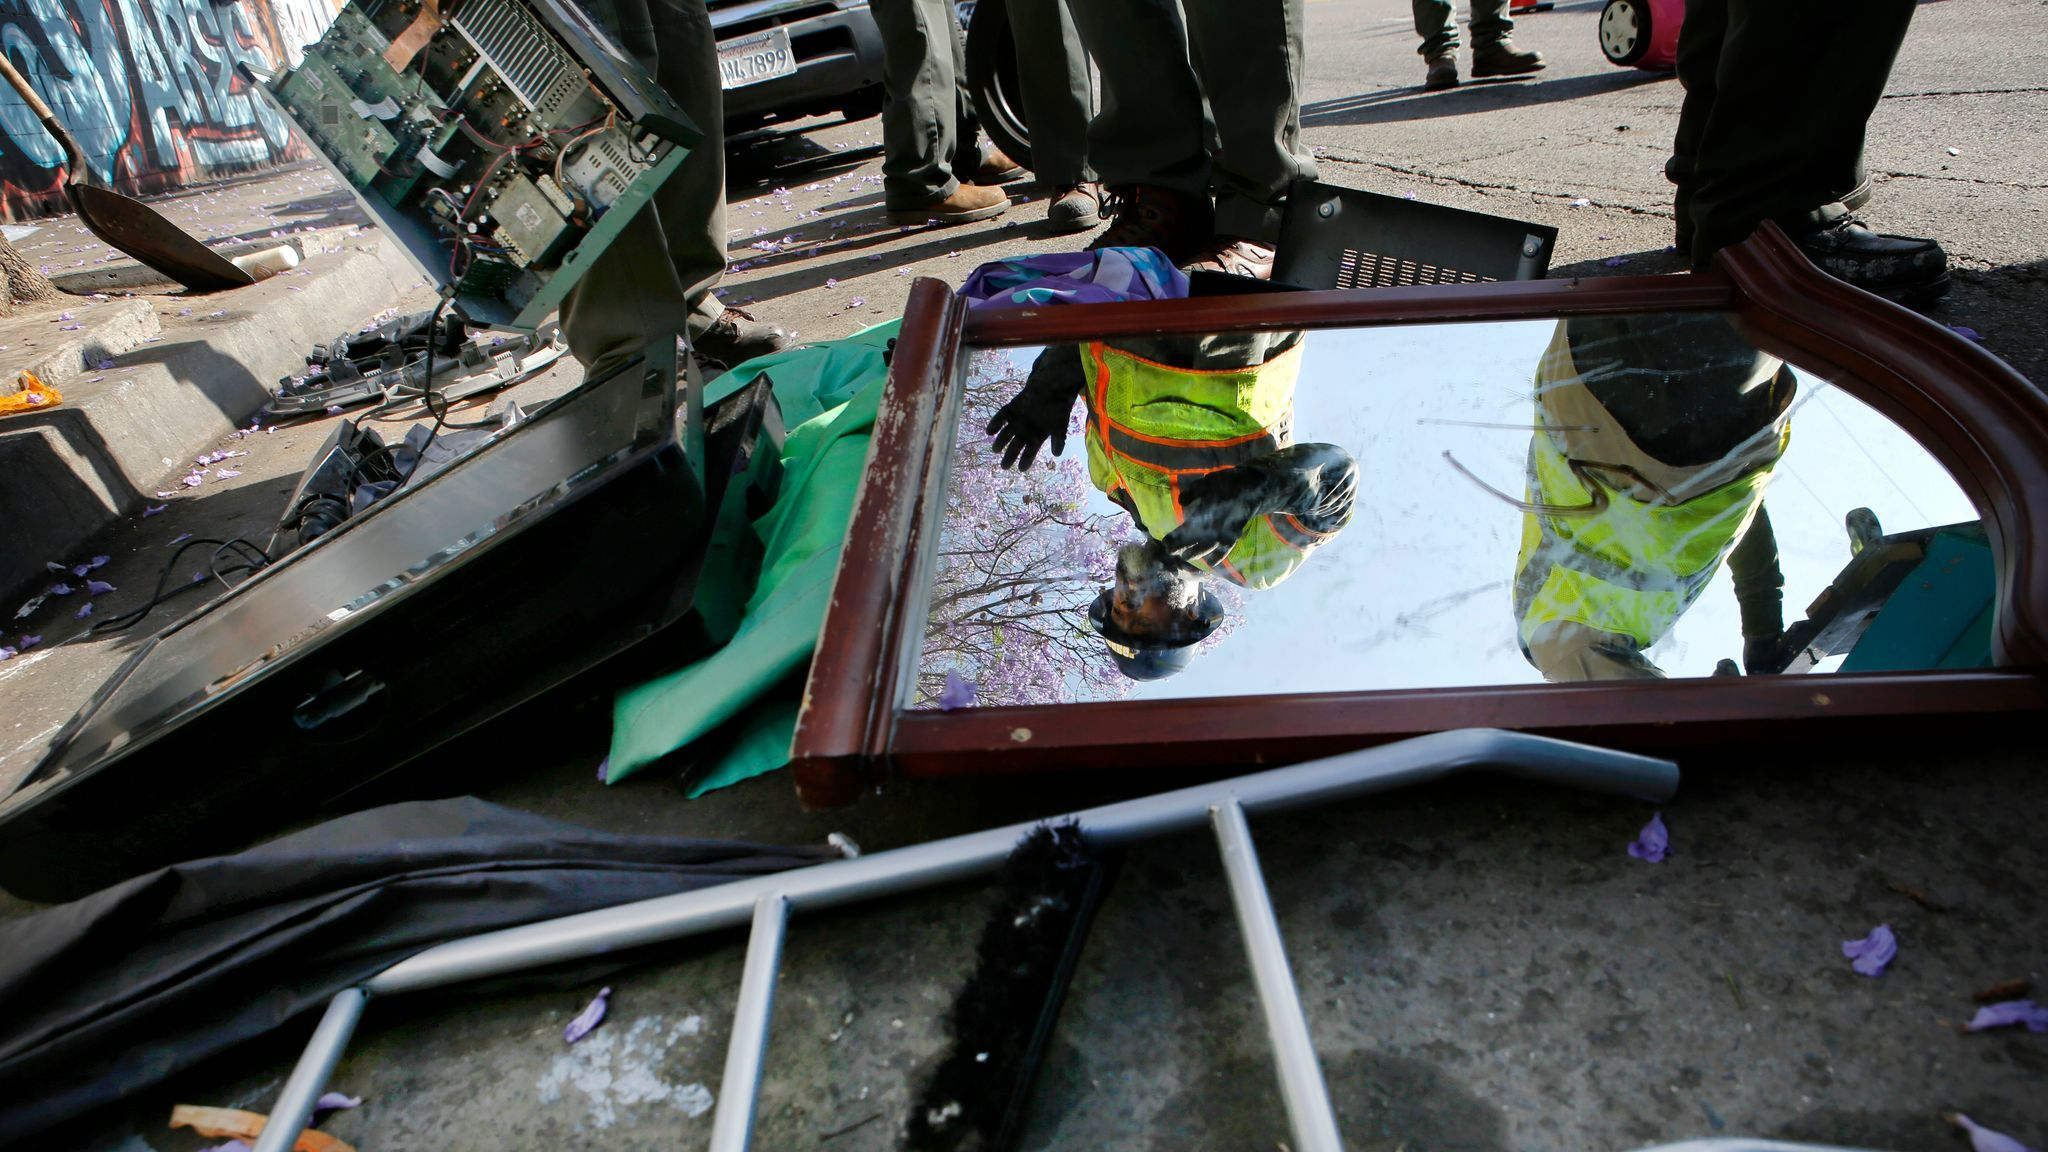 Sanitation workers dispose of waste during a sanitation cleaning in Los Angeles.